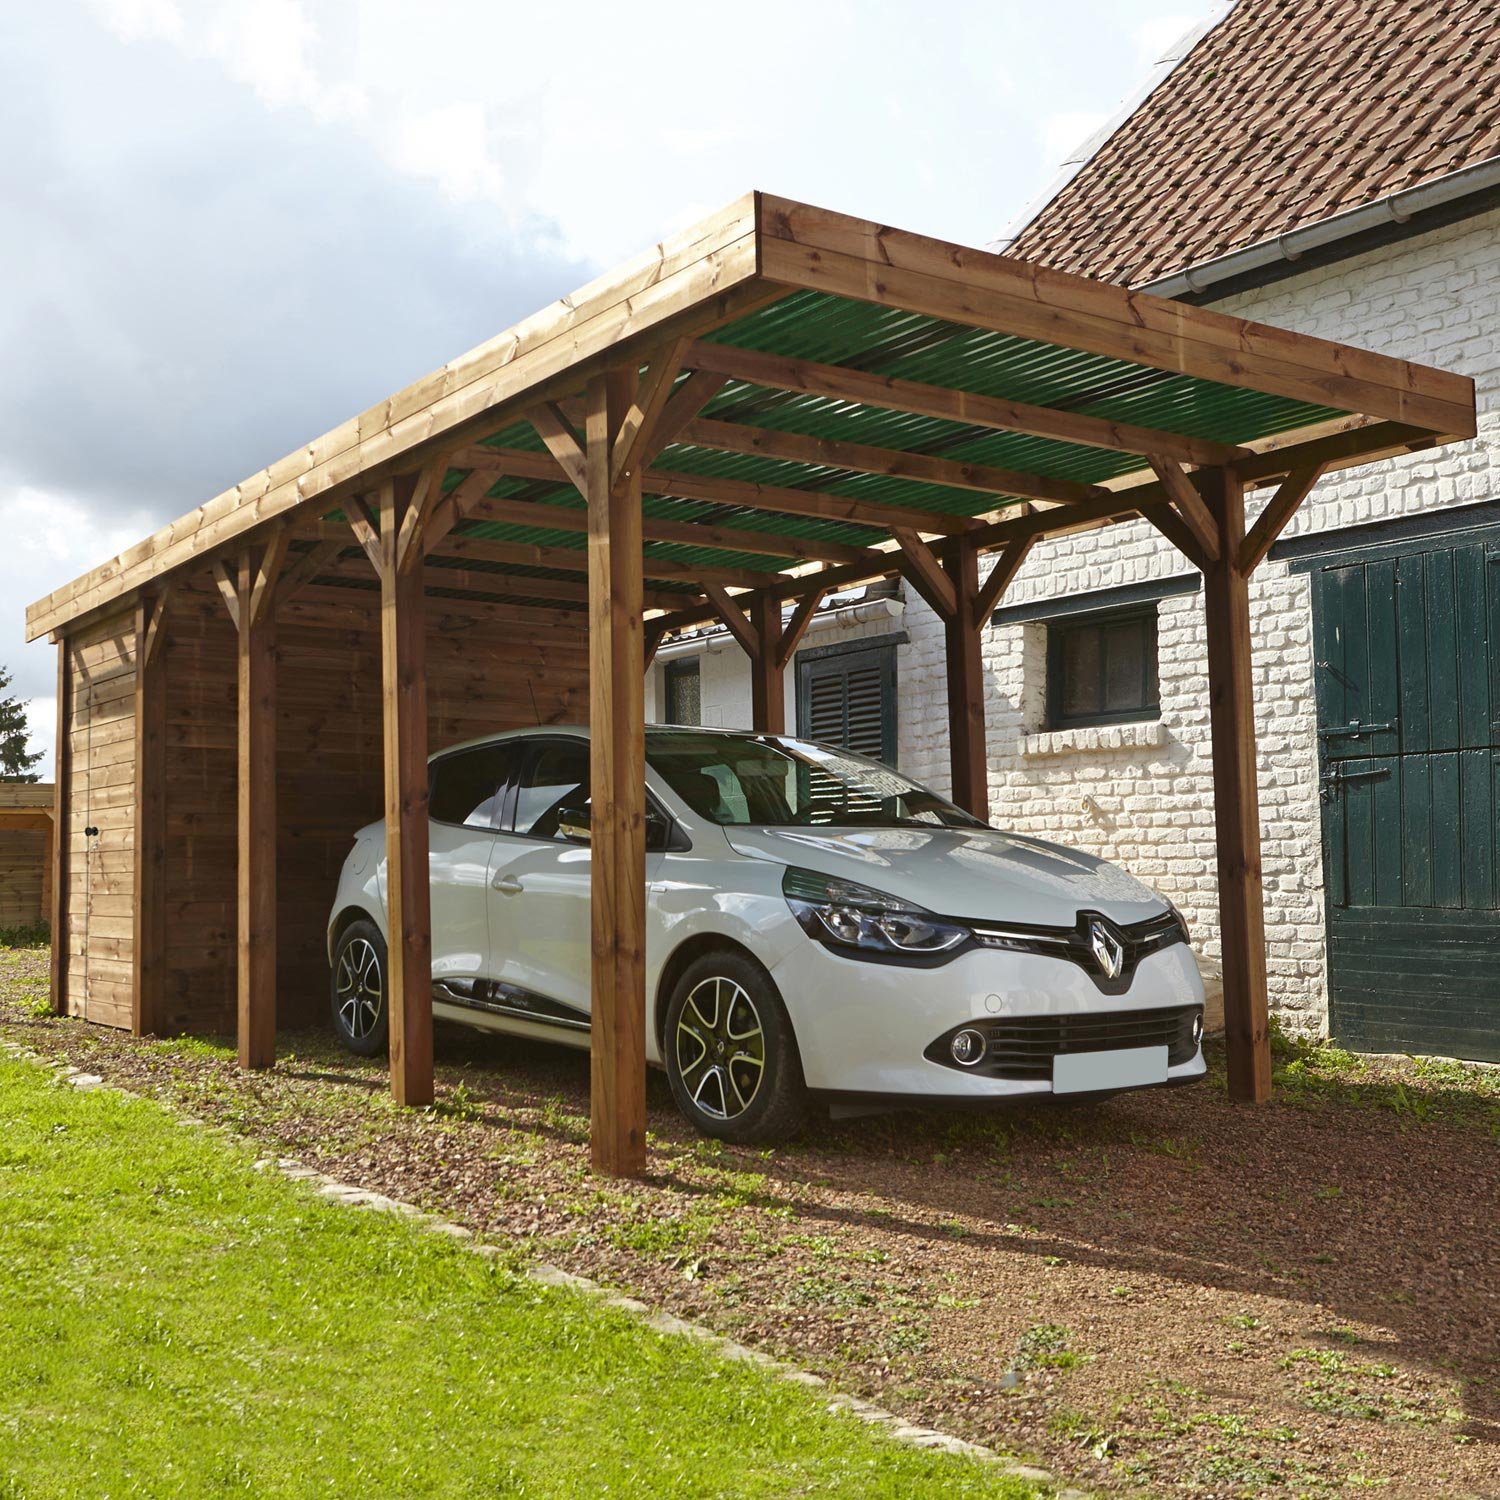 Garage En Bois Leroy Merlin : Carport bois Harry 1 voiture, 17 m? Leroy Merlin